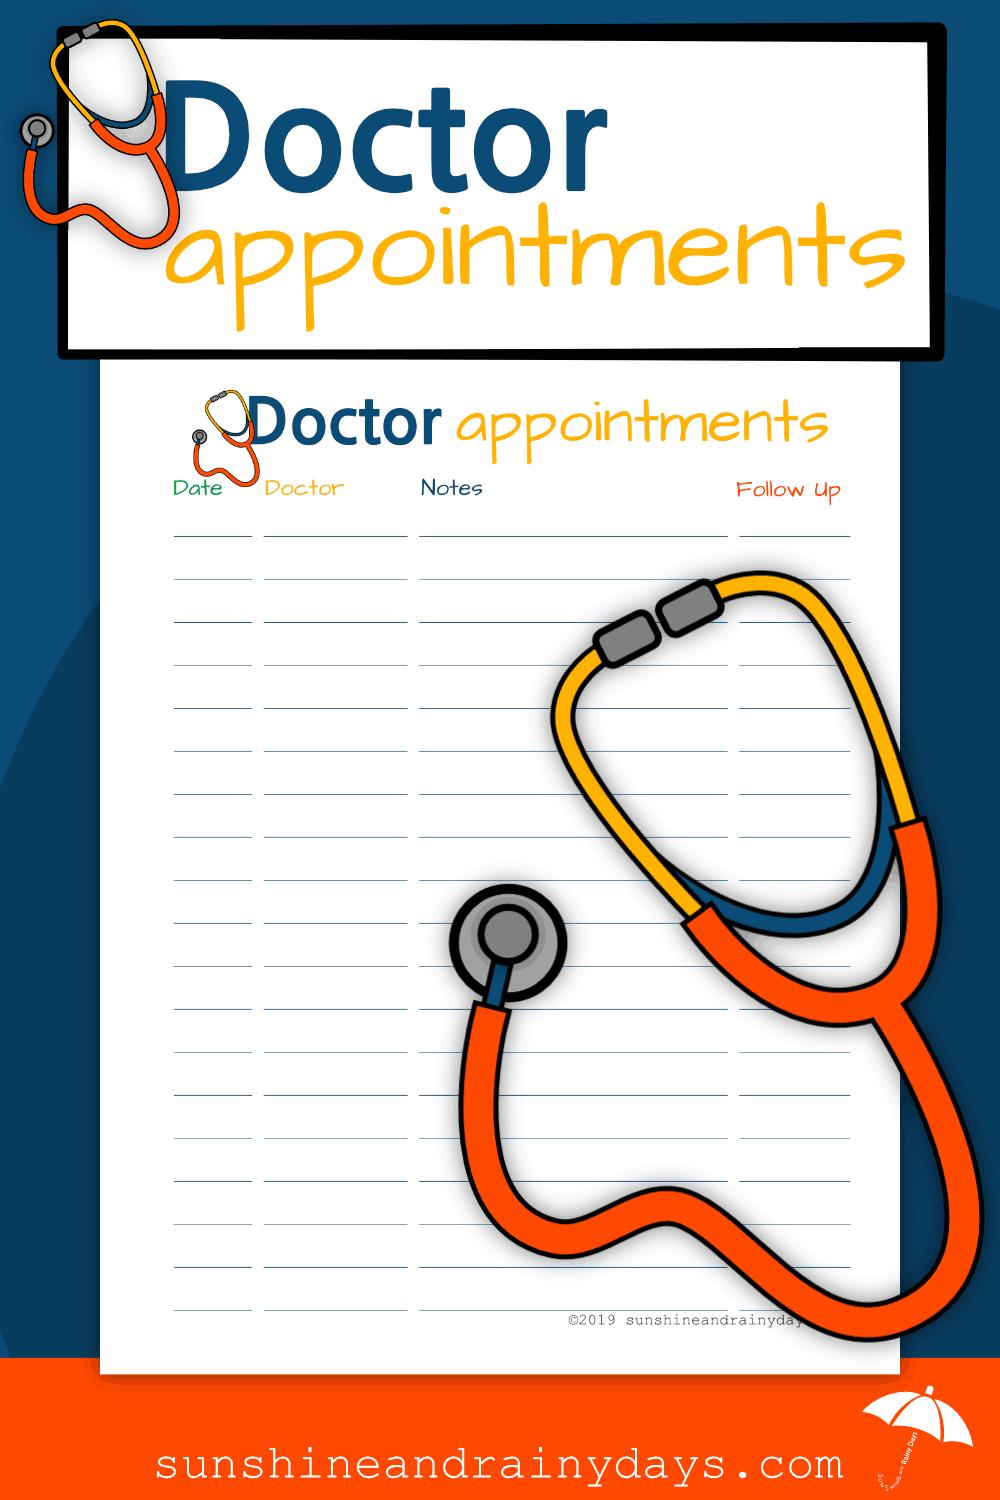 With the Doctor Appointments Free Printable, there is no need to call the doctor's office to see when your last appointment was. You have the information you need right in your very own Medical Binder! Medical Binder Printables | Doctor Appointment Tracker | Medical Printables | #medicalprintables #medicalbinder #SARD